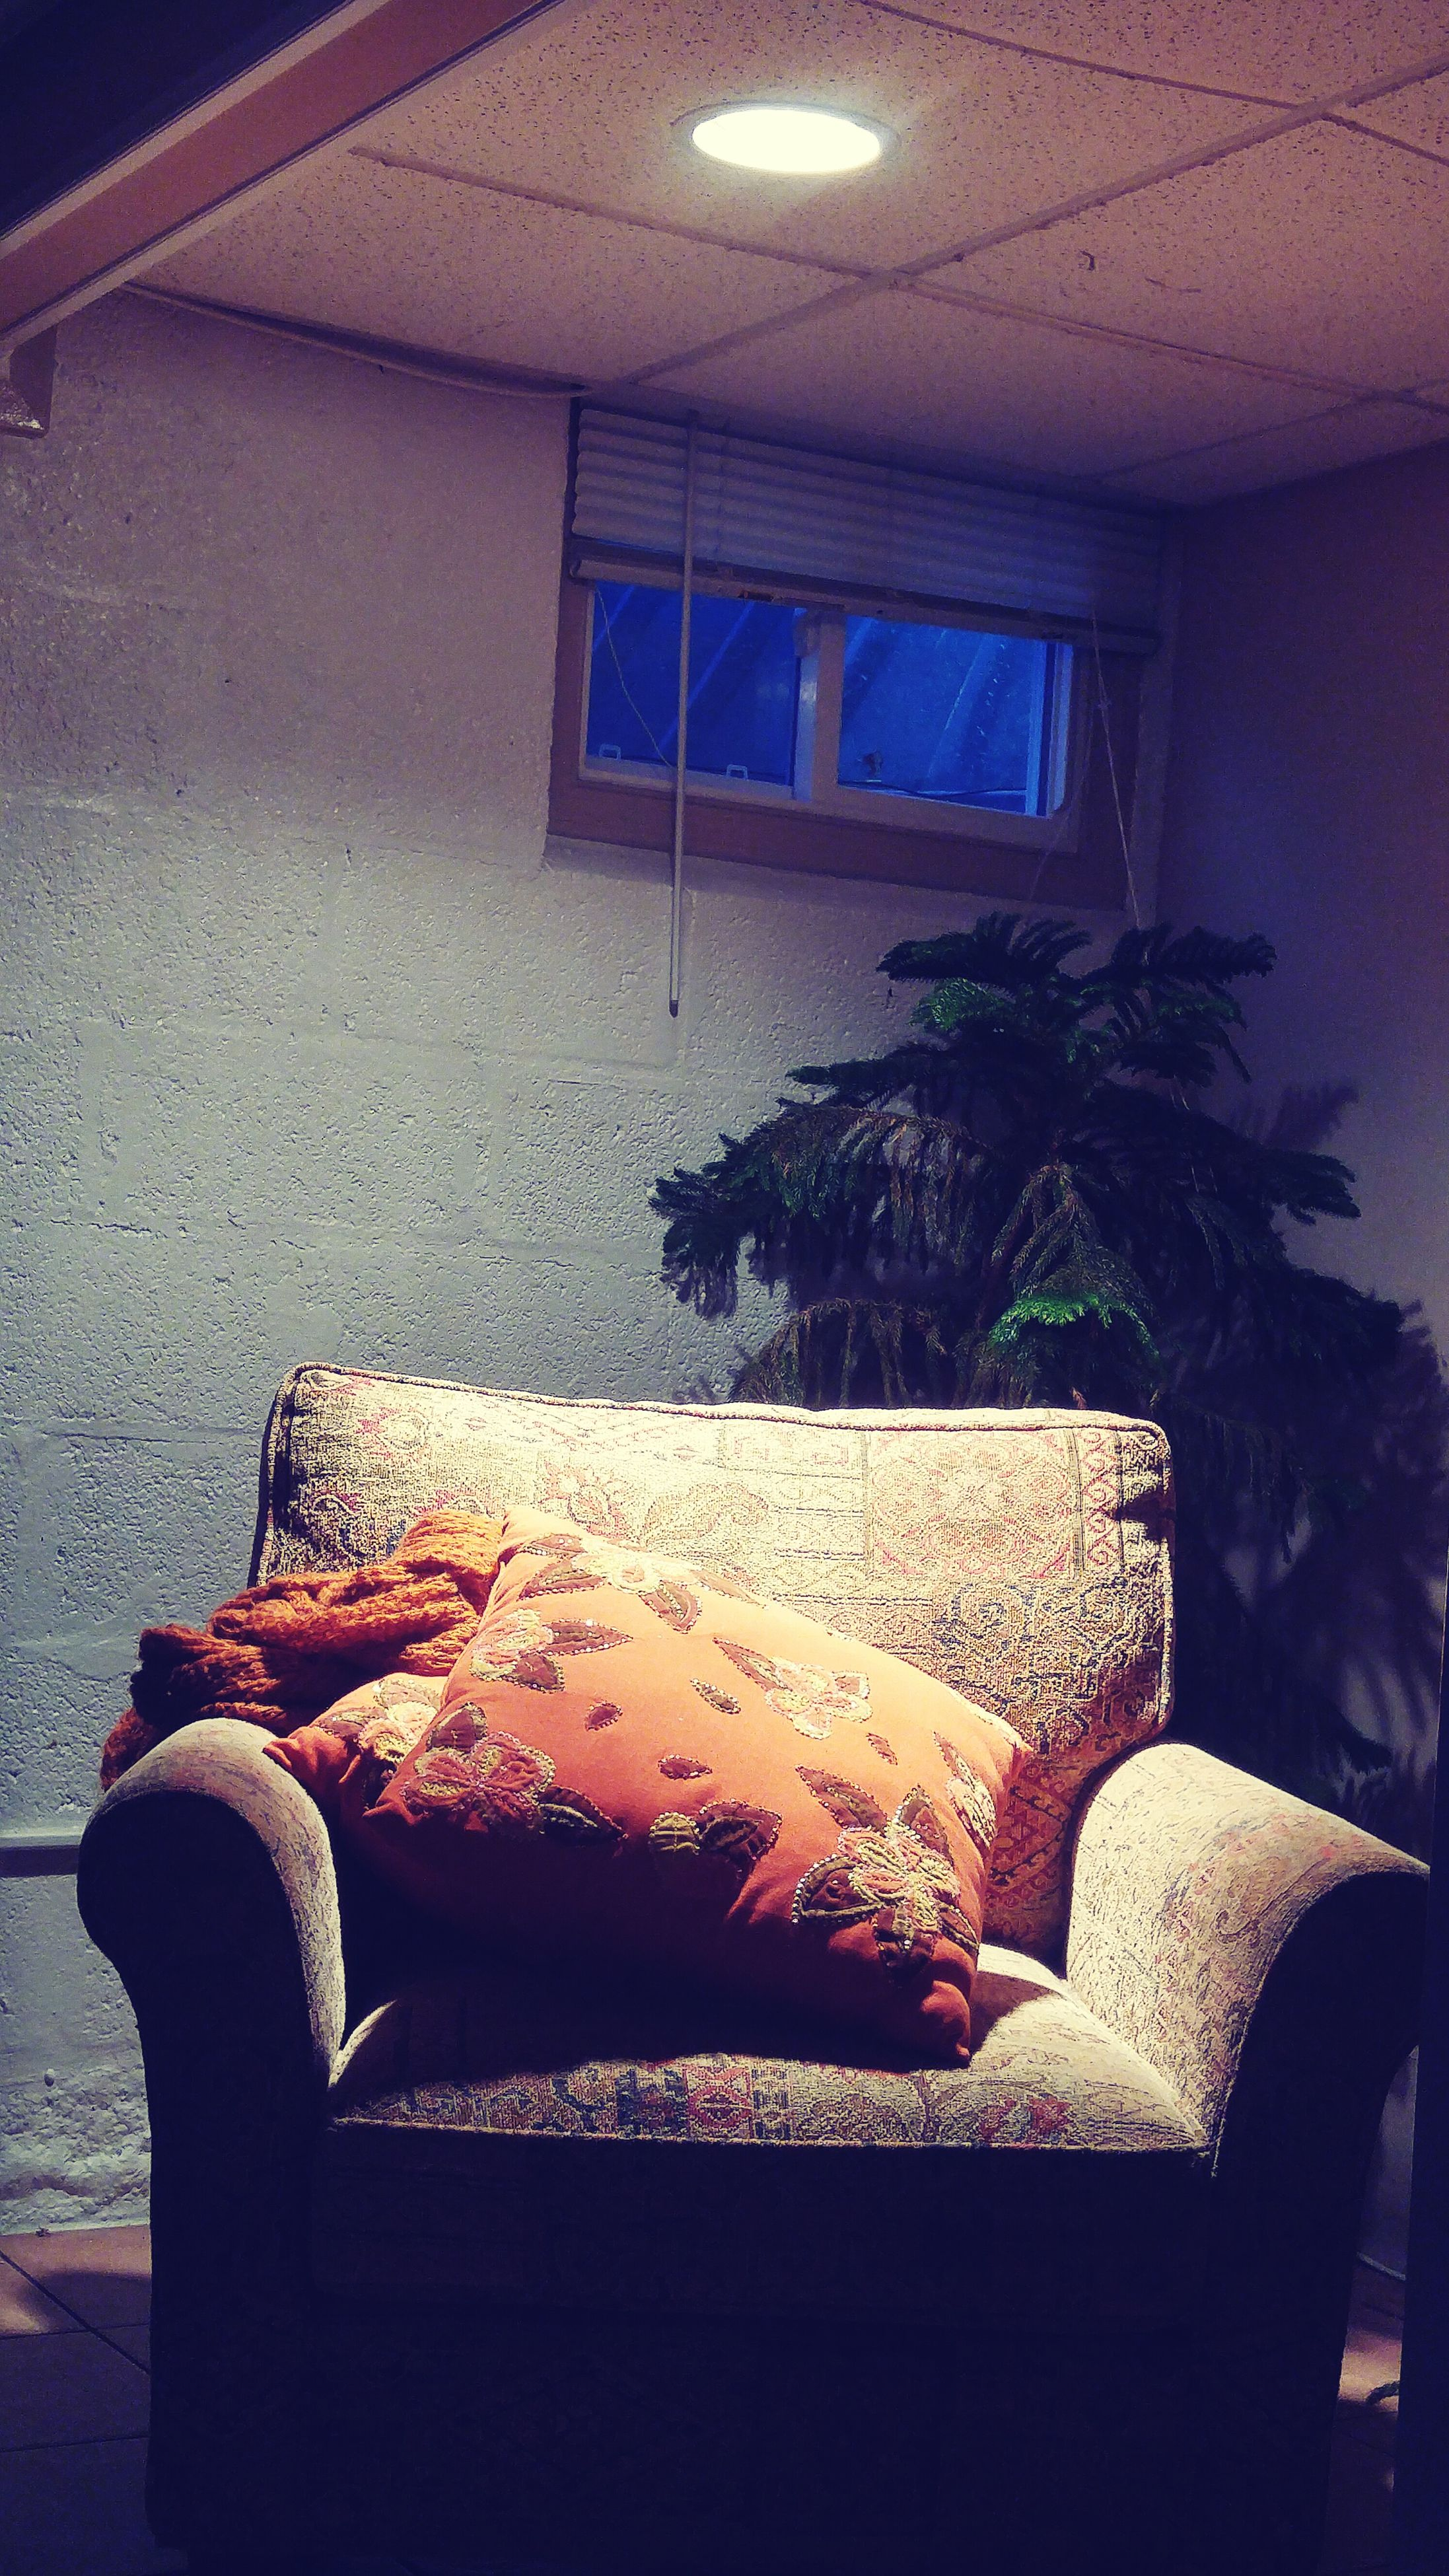 indoors, chair, absence, house, window, home interior, sofa, sunlight, built structure, empty, architecture, bed, seat, furniture, no people, bedroom, wall - building feature, day, relaxation, wall